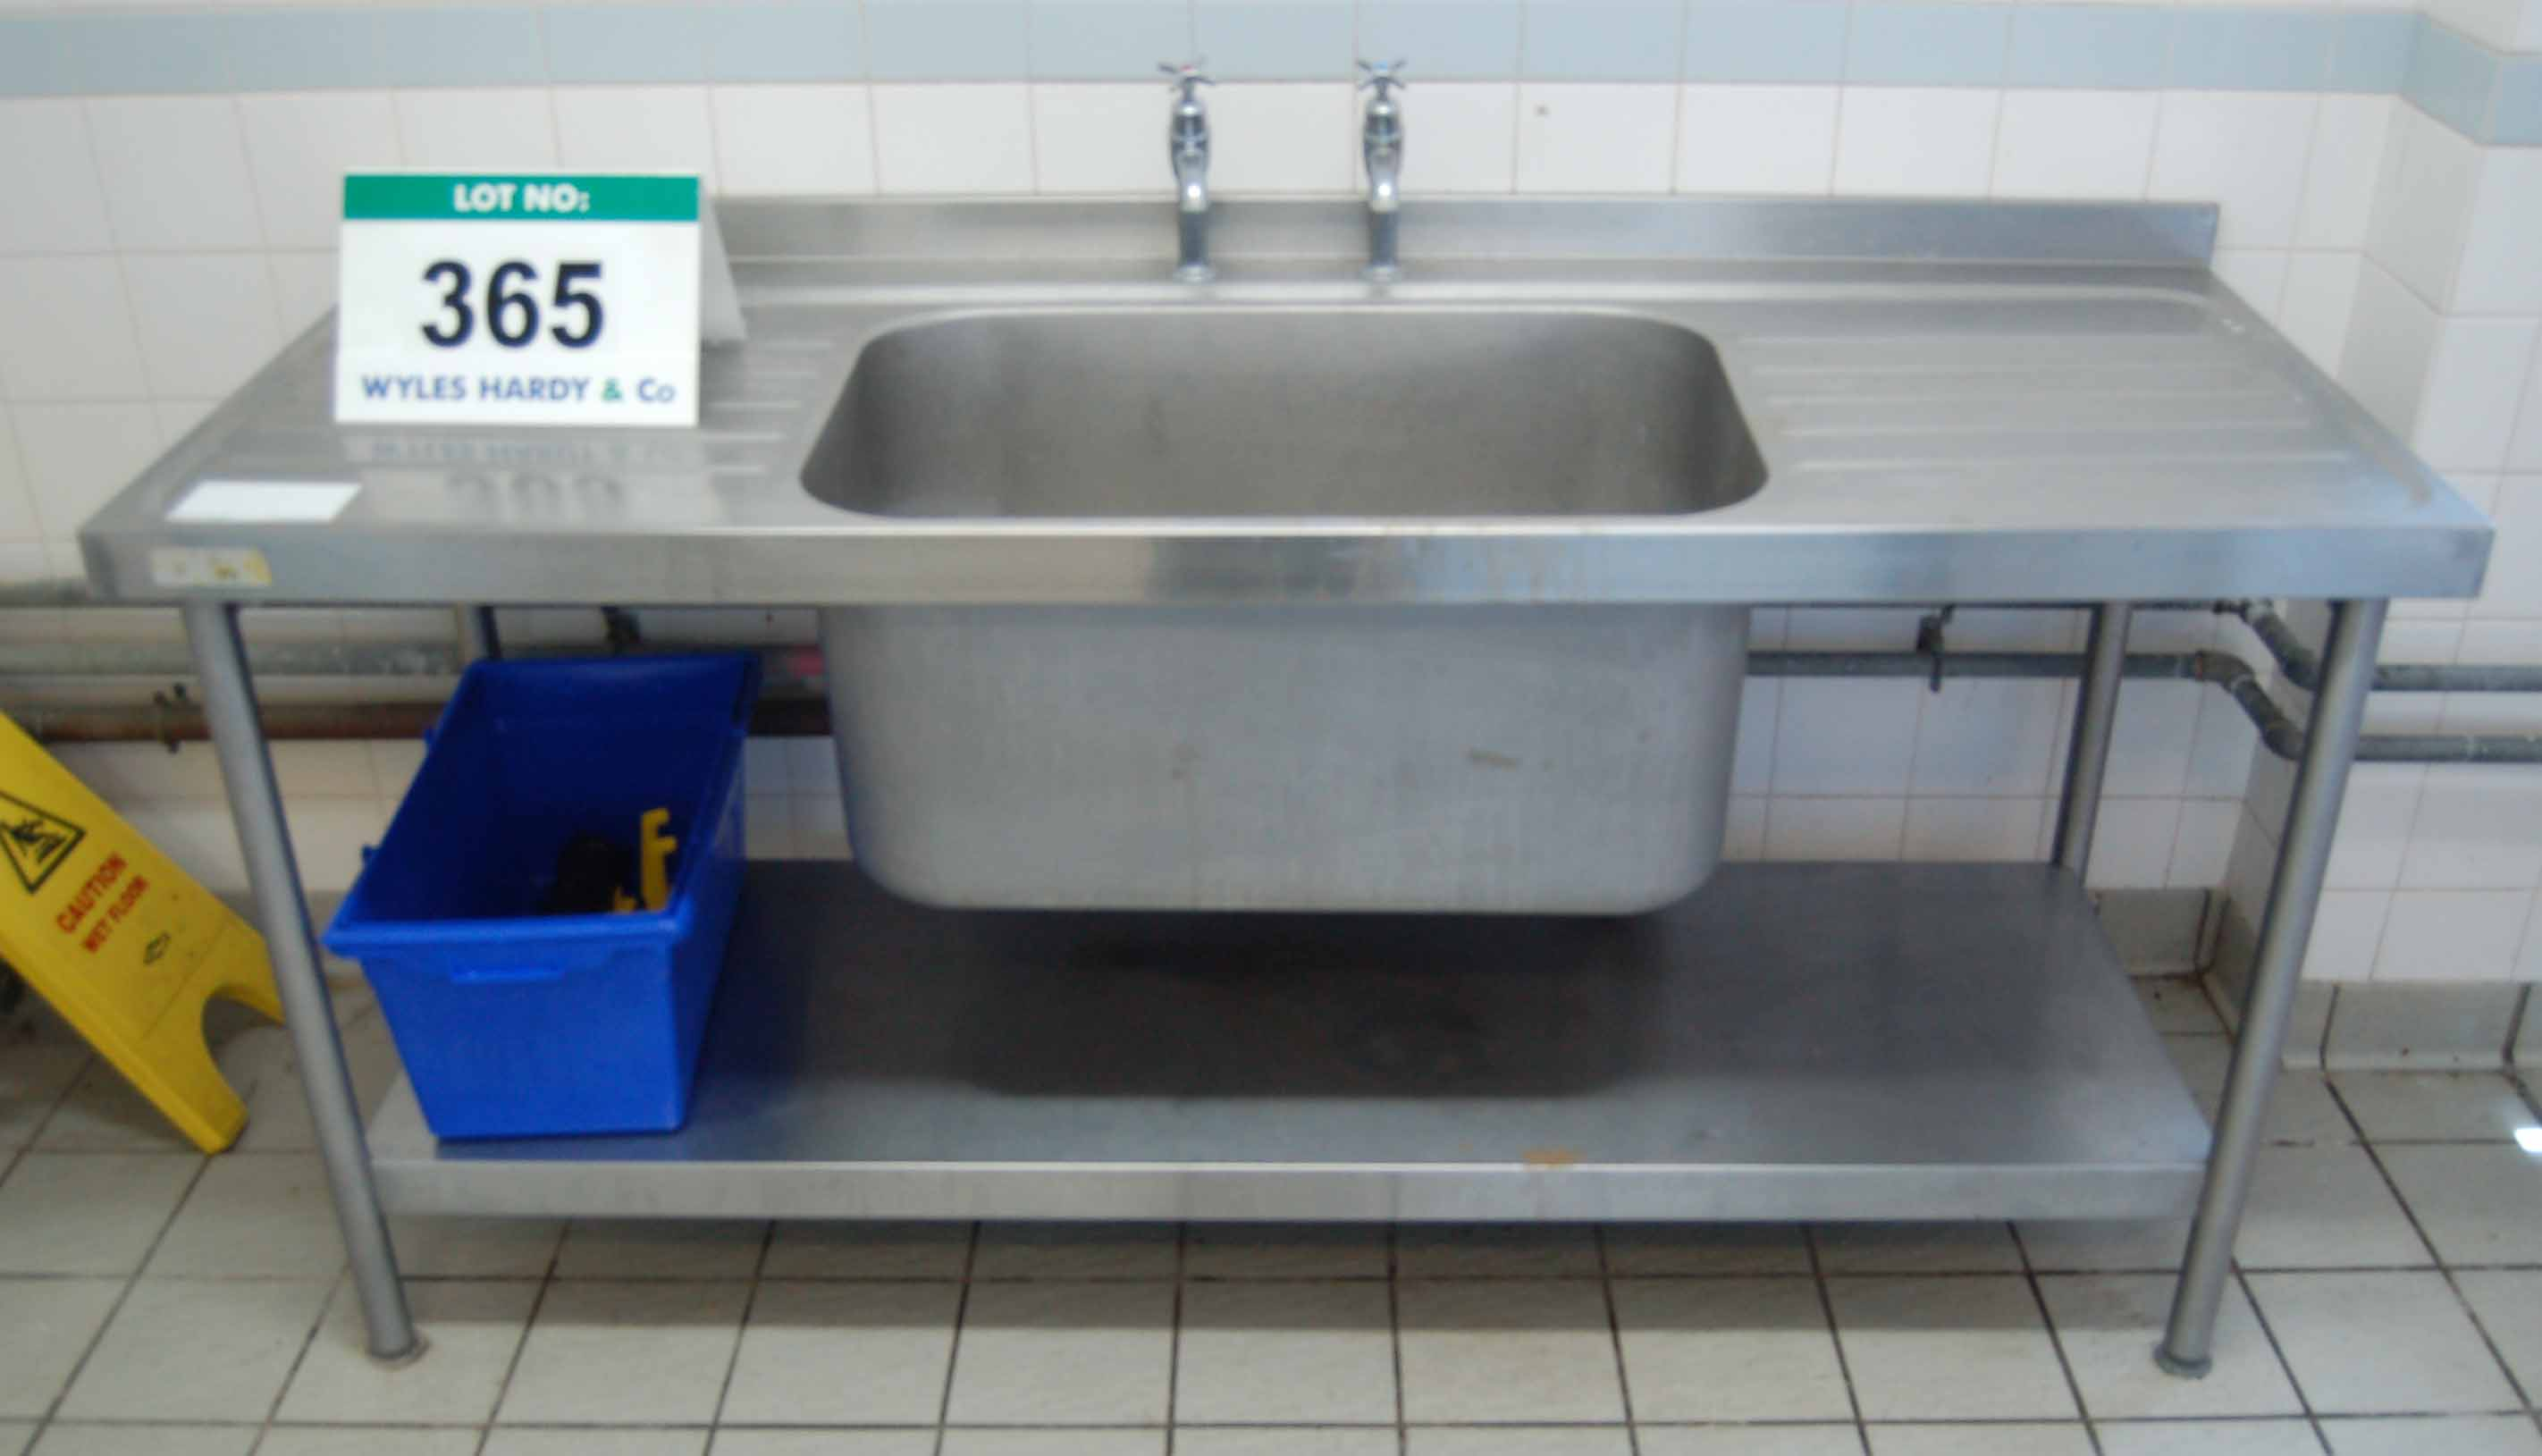 Stainless steel sink units stainless steel double drainer sink -  Steel Sink Unit With Fitted Next Lot Lot 365 A Bartlett B Line Single Bowl Double Drainer Free Standing Stainless